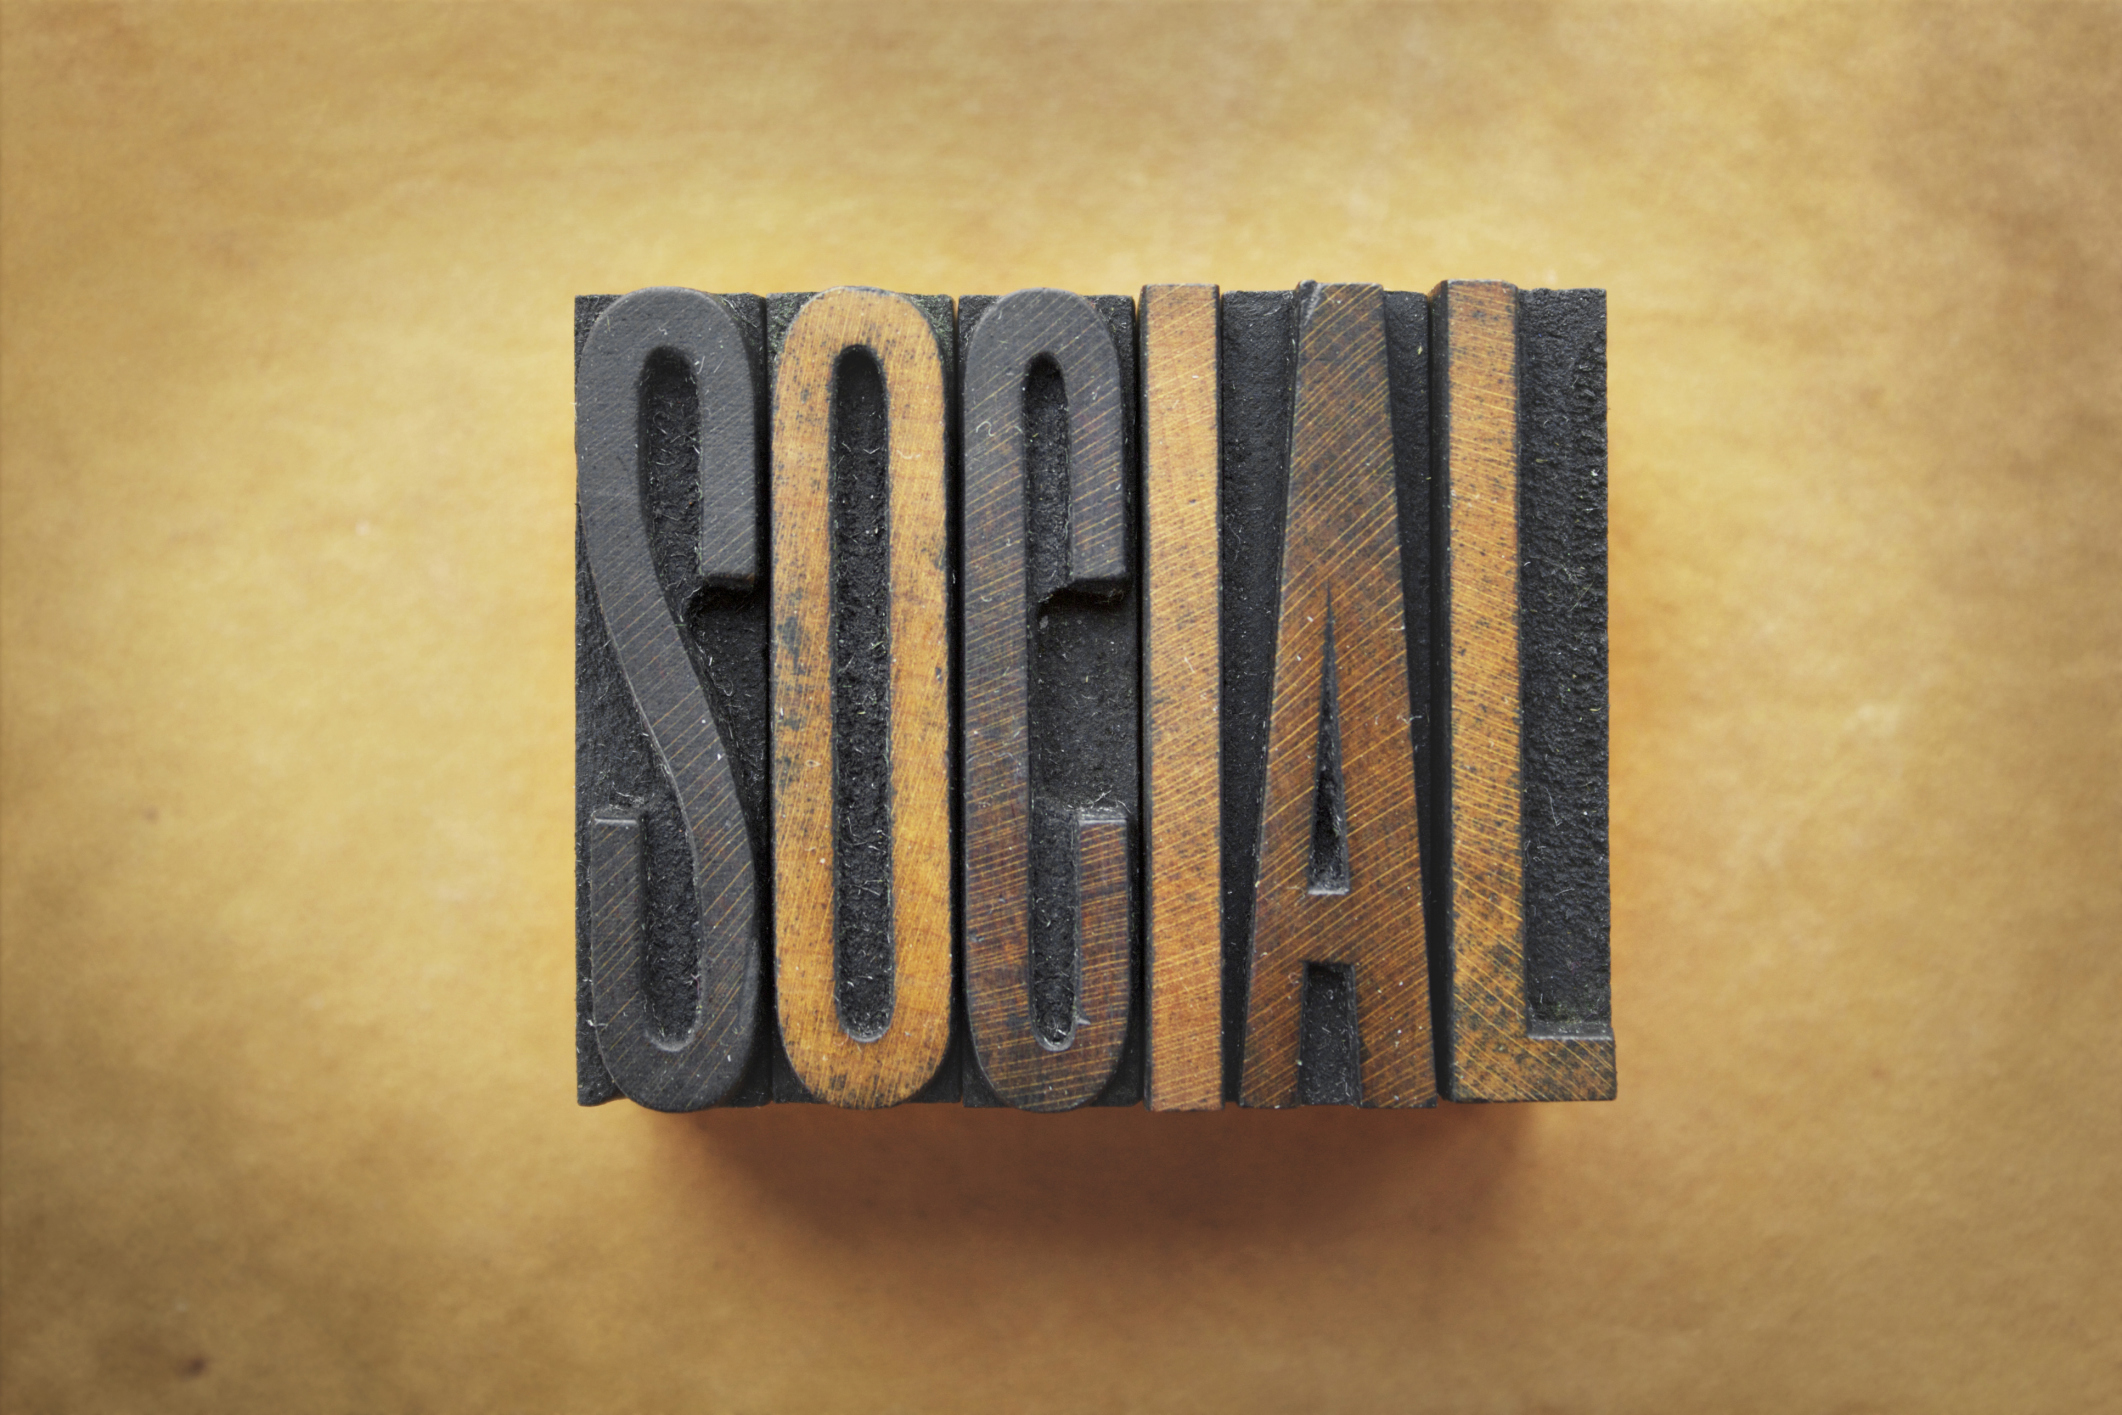 Speaking Life to Culture in This Digital Age: Social Ecclesia